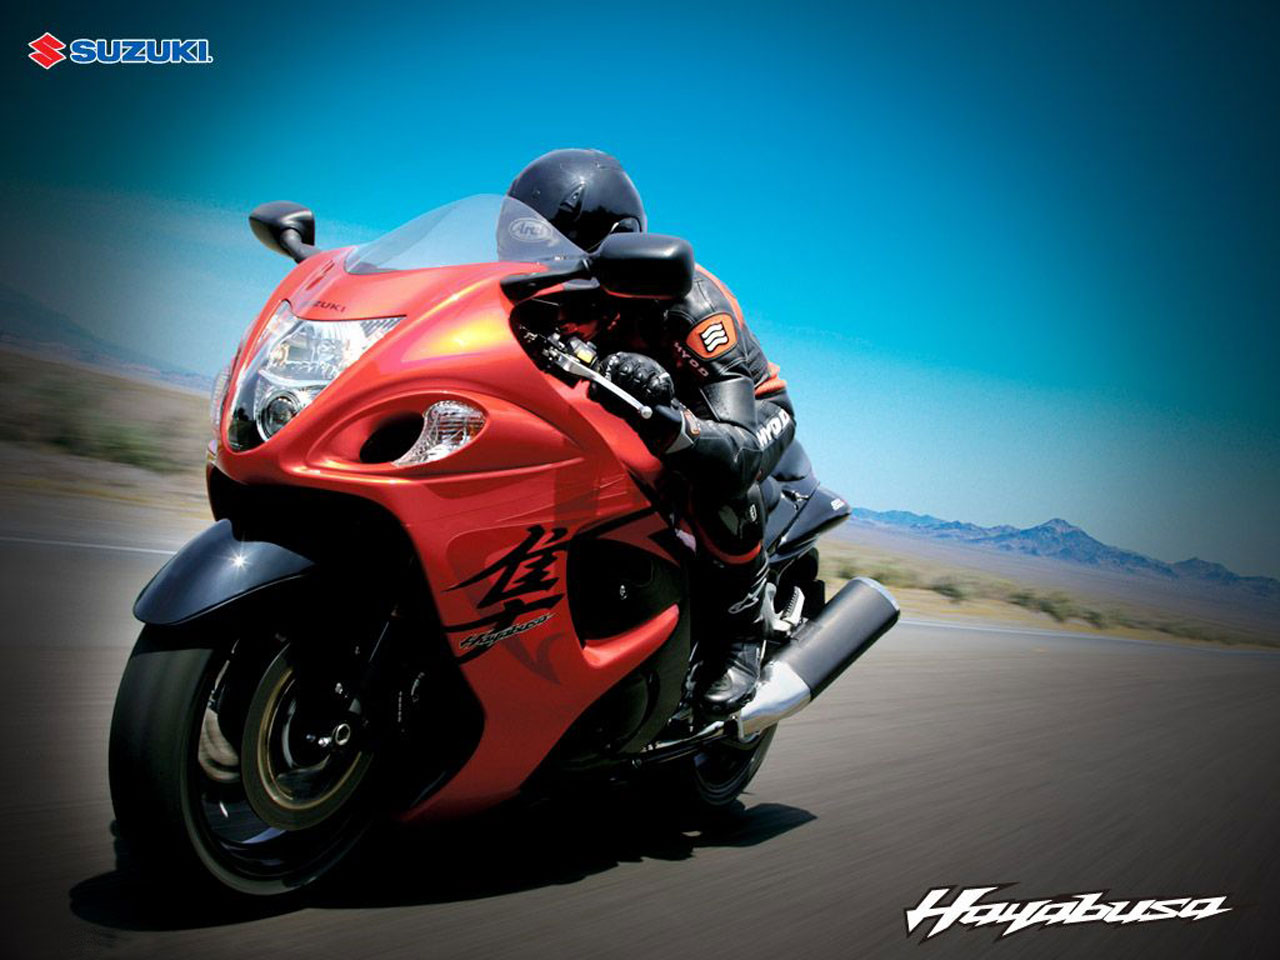 suzuki heavy bikes wallpapers |bike n bikes all about bikes